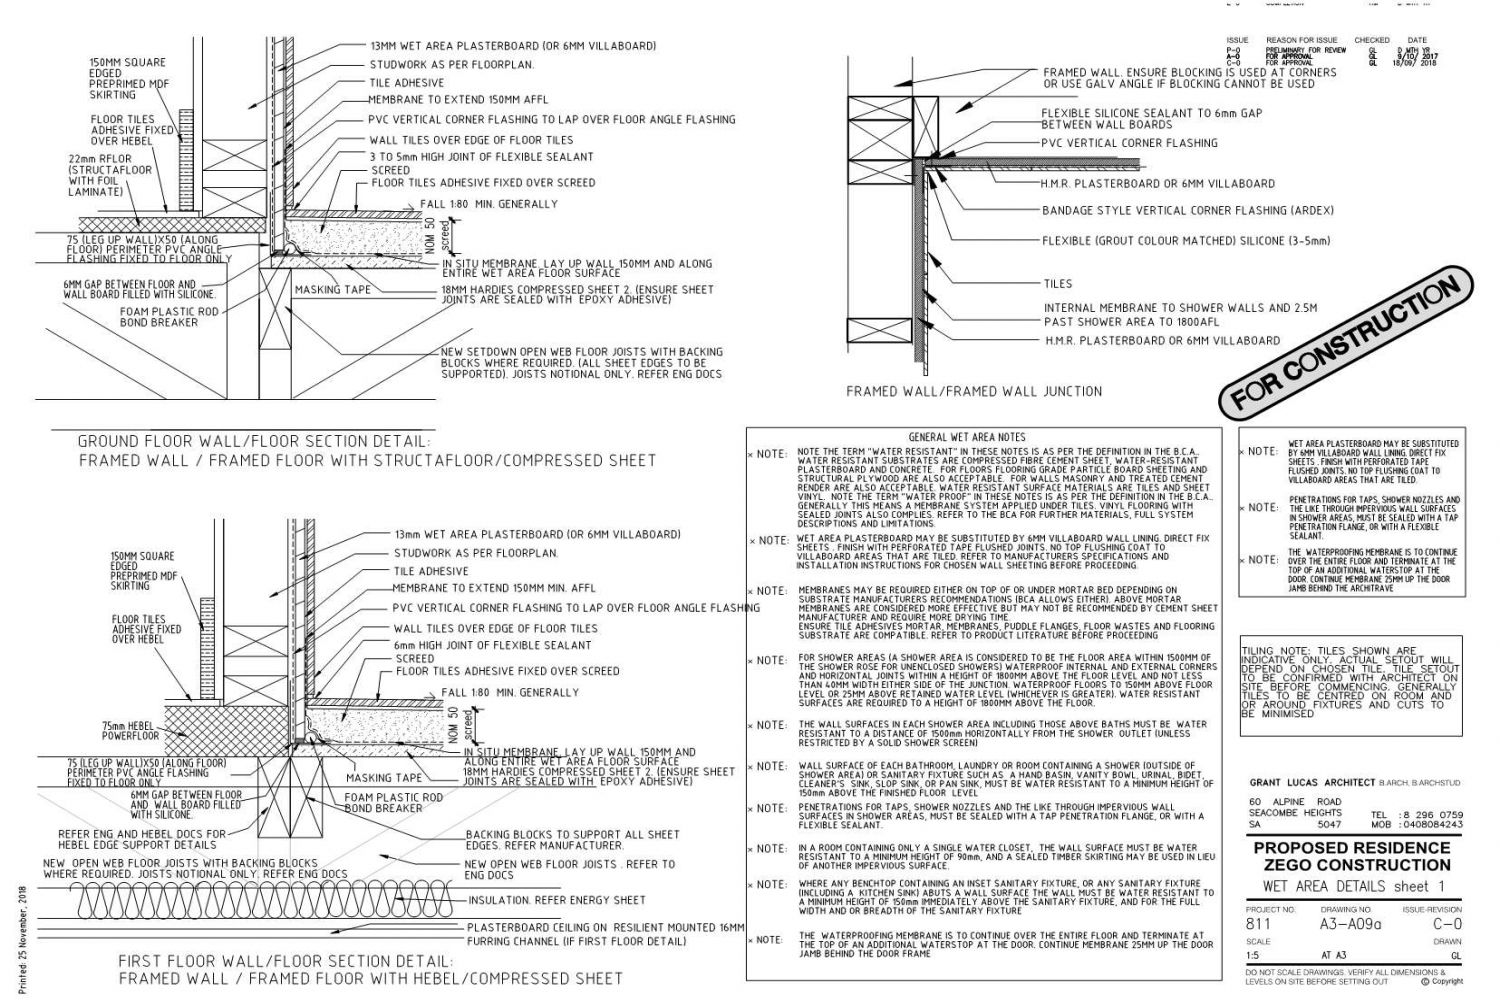 Owner Builder Zego Construction  2 storey Home at Port Noarlunga: Working Drawings Sheet 20: Wet area details sheet 1